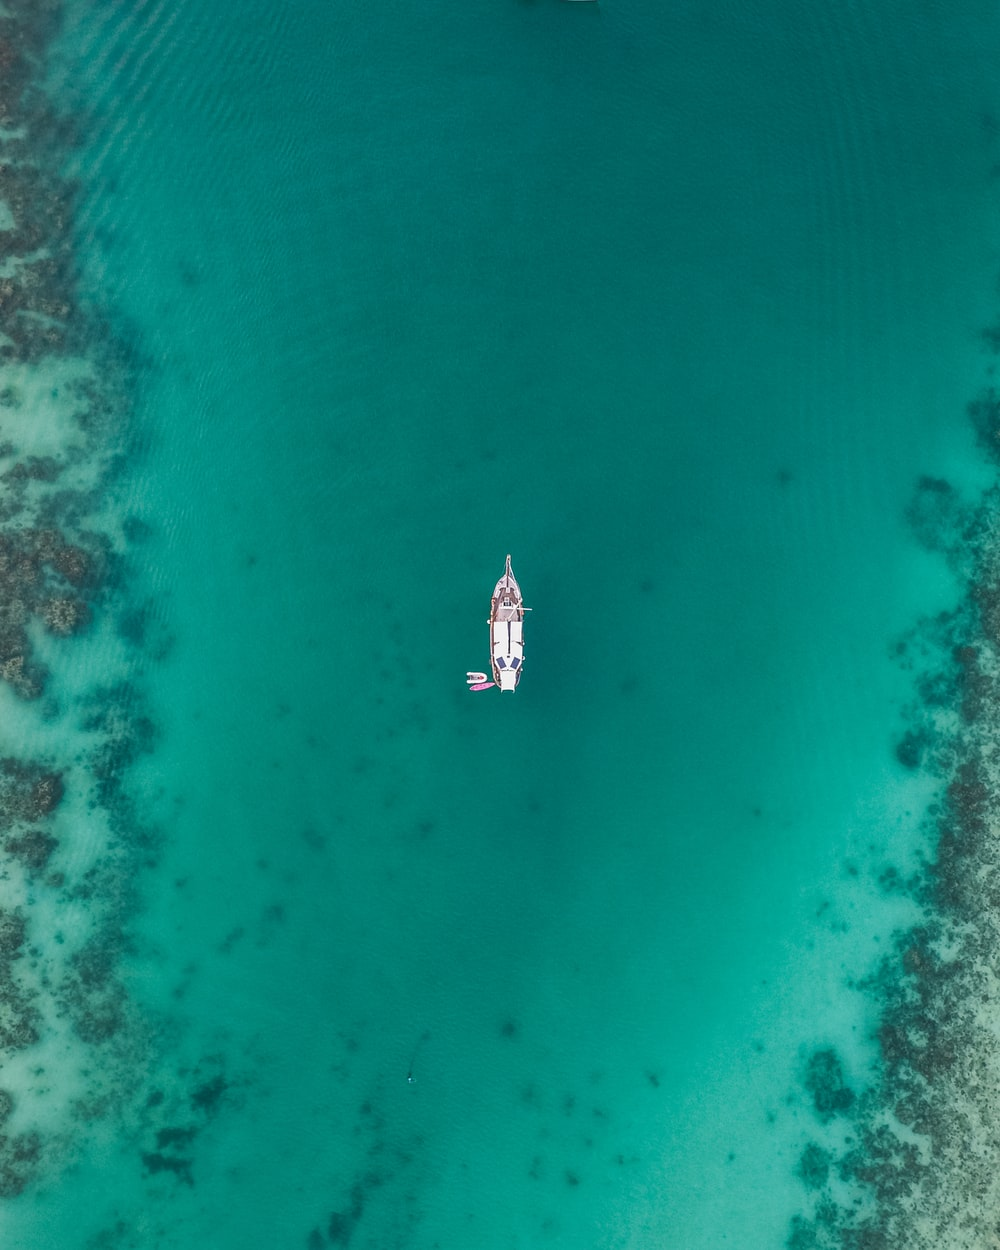 aerial view of boat on body of water at daytime